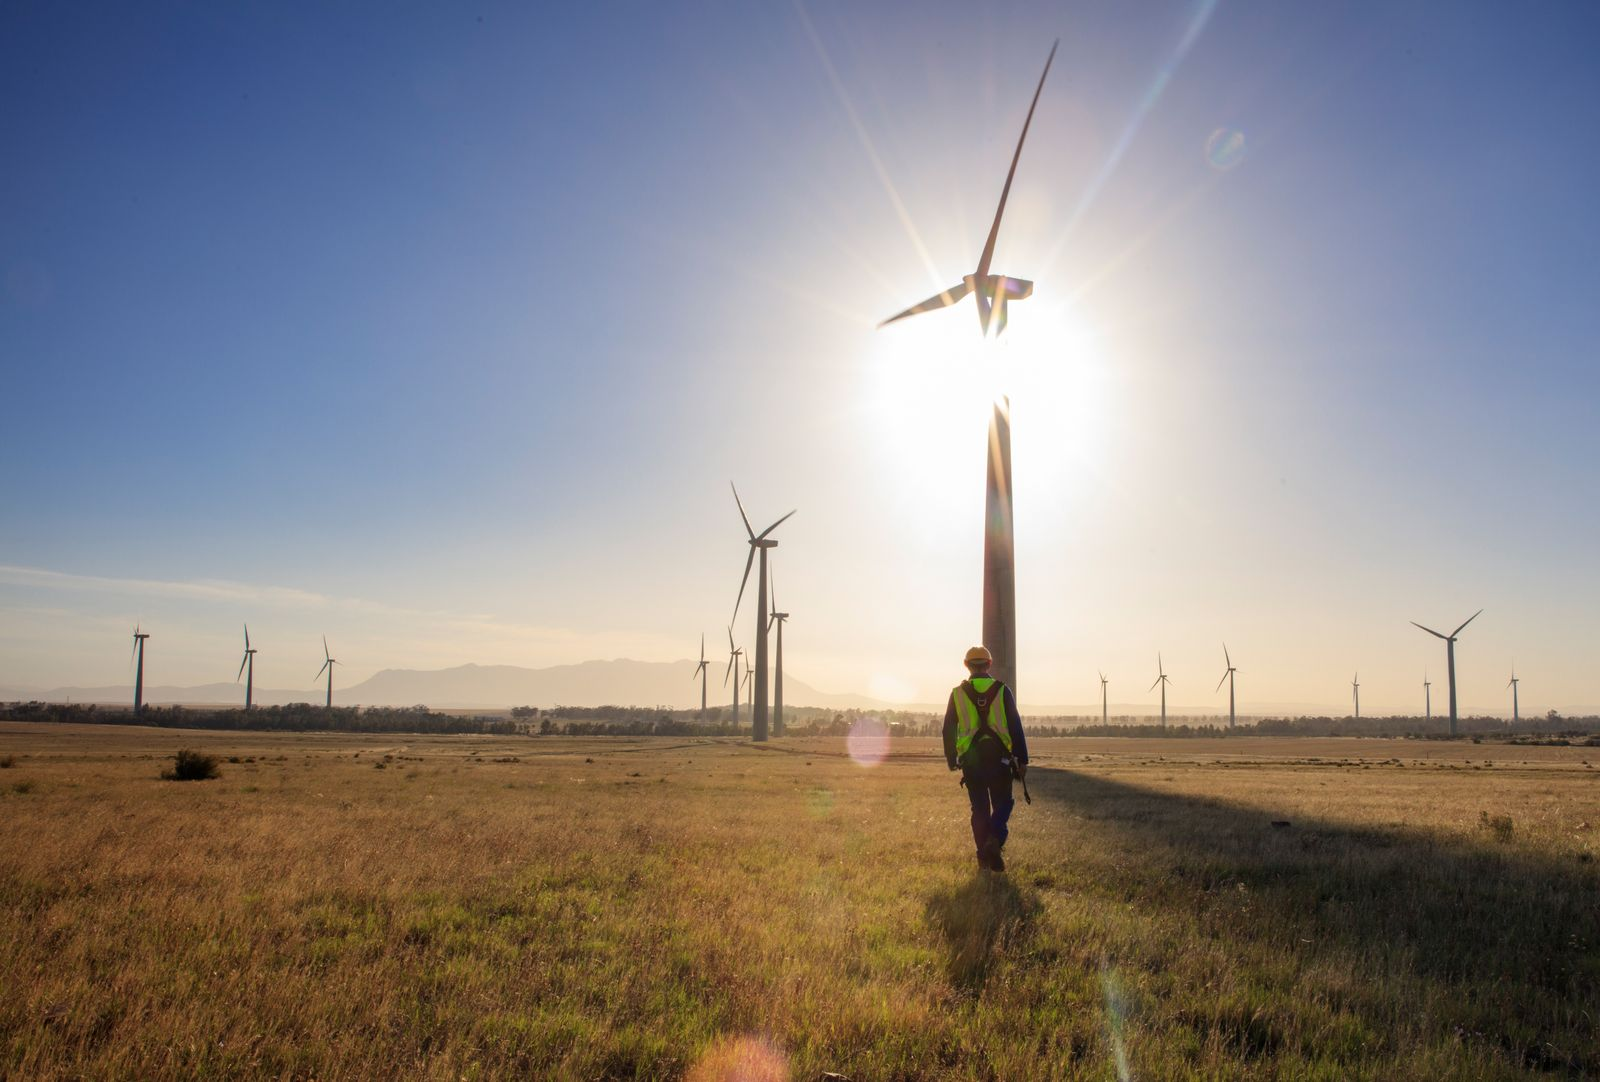 Engineer walking on a wind farm at sunset